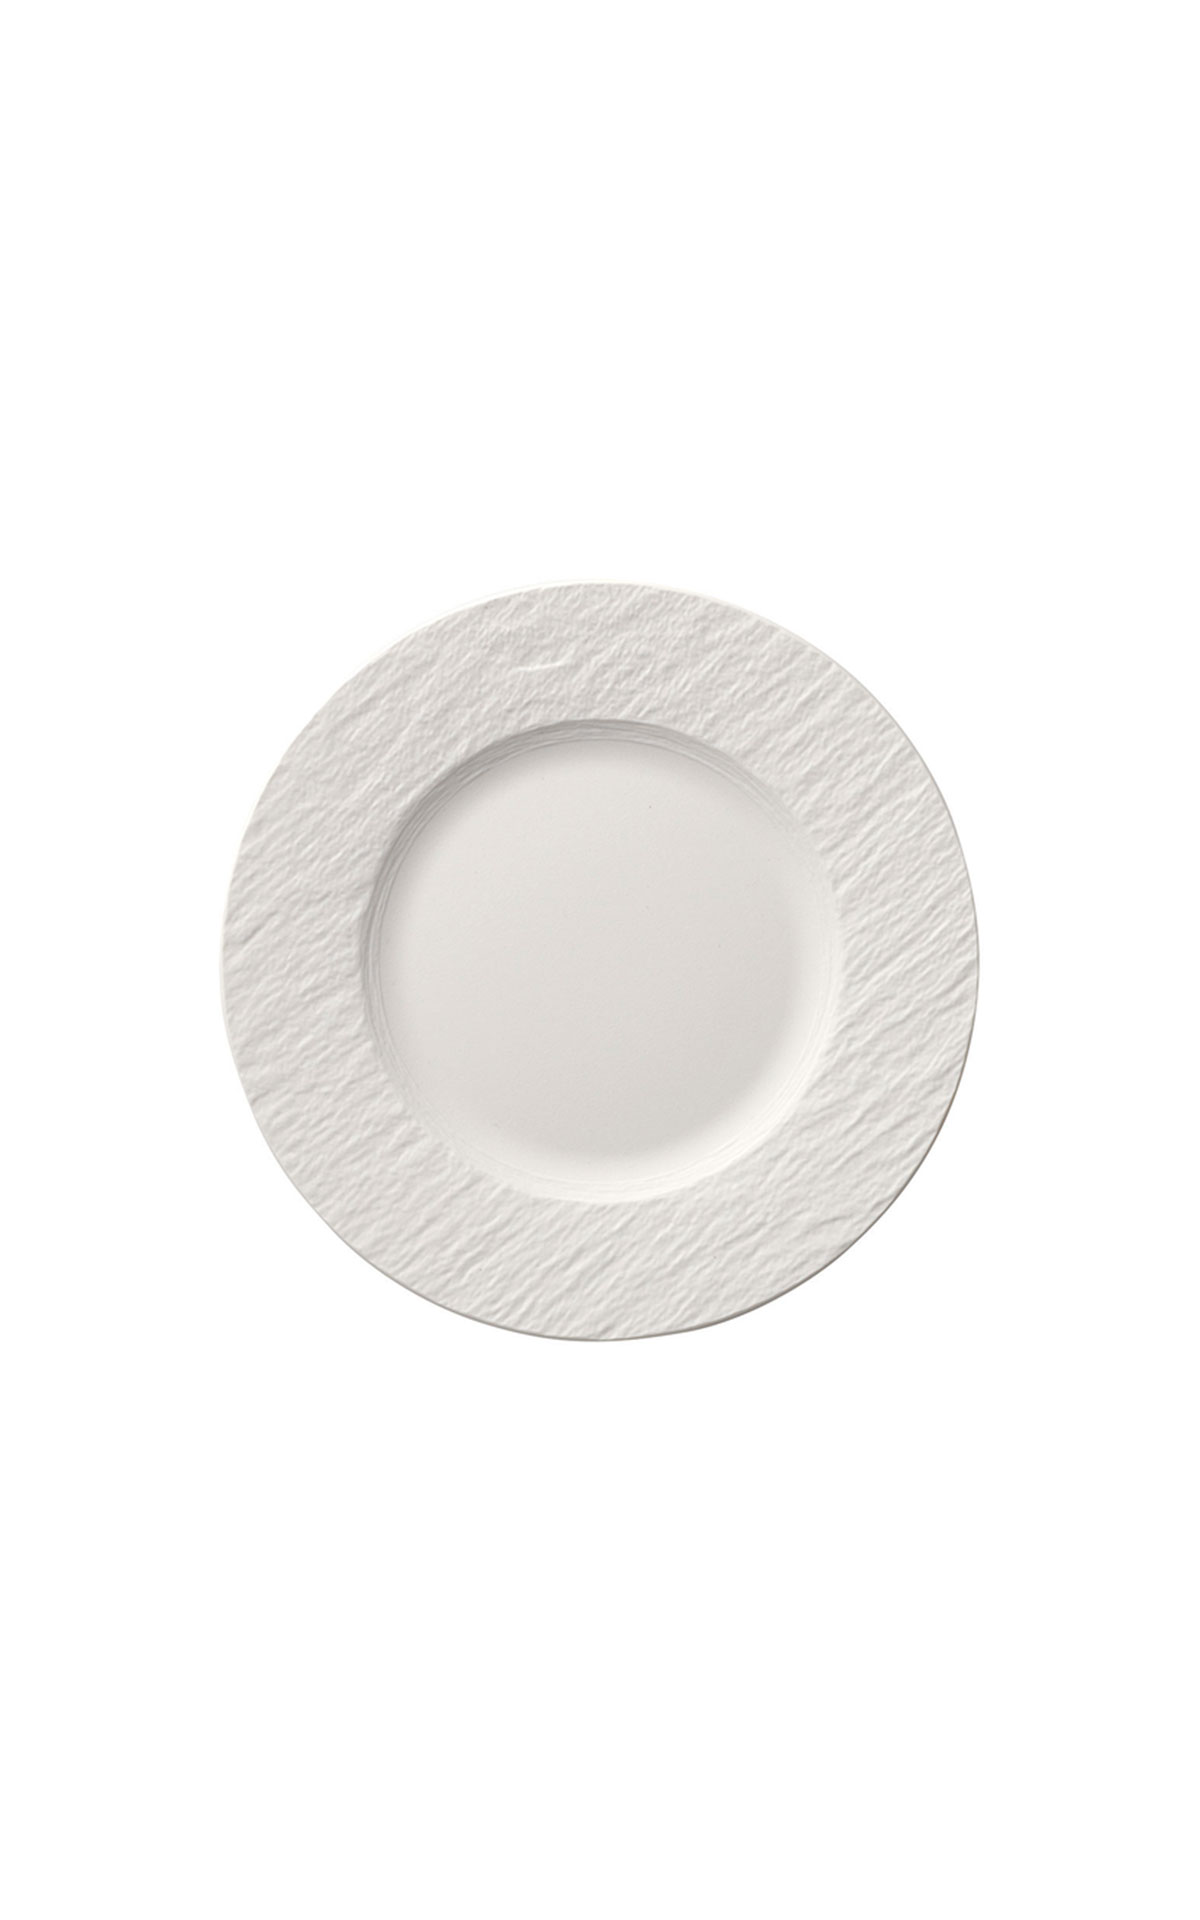 Villeroy and Boch Manufacture blanc salad plate 22cm from Bicester Village